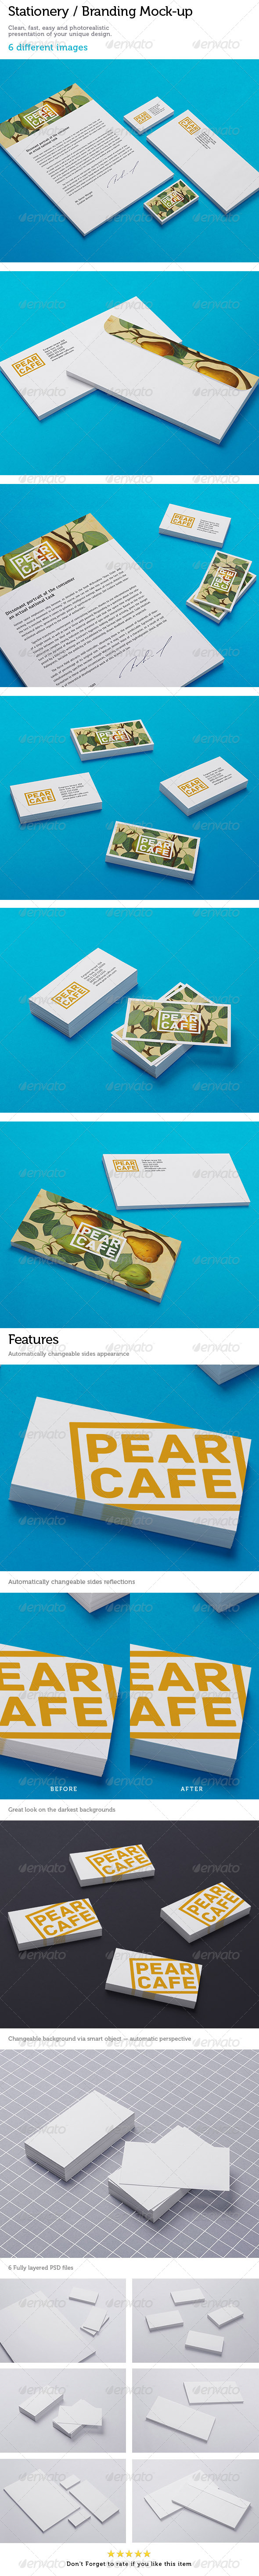 GraphicRiver Stationery Branding Mock-Up 4556255